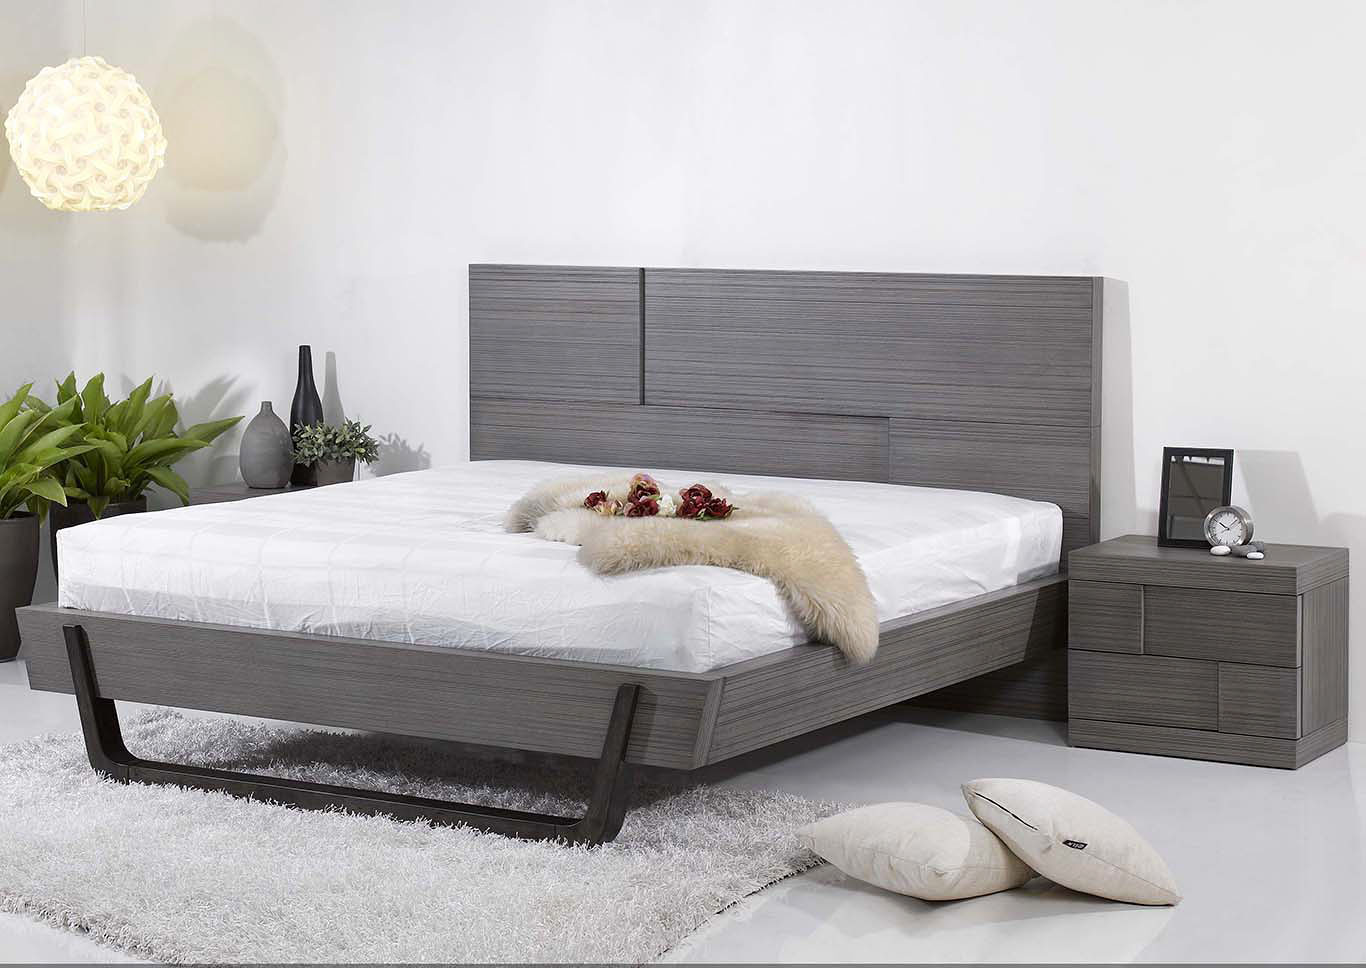 Sydney Queen Platform Bed,Chintaly Imports